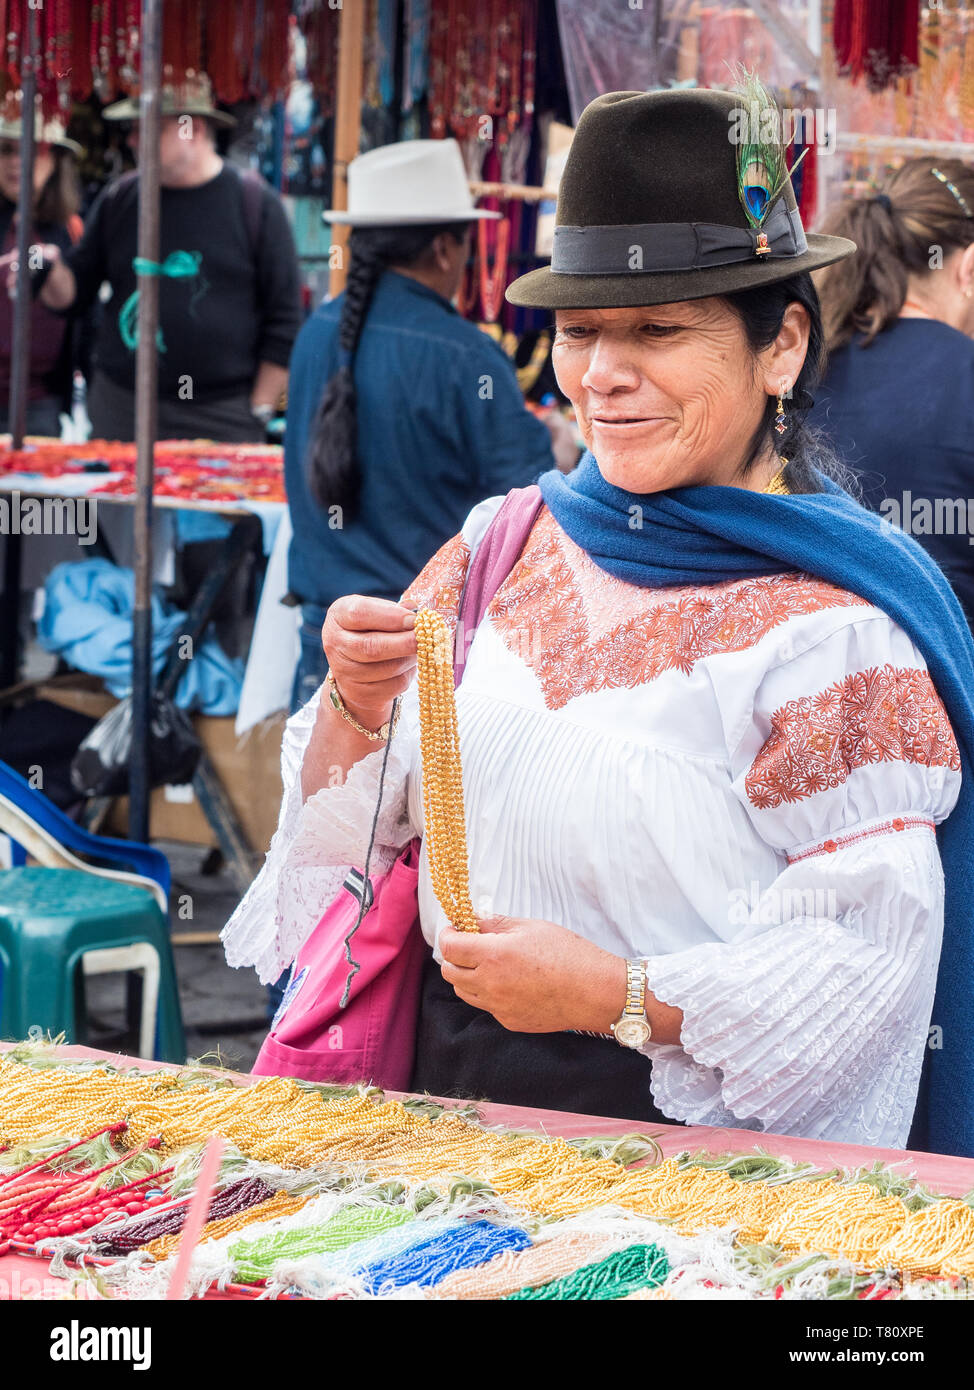 Indigenous woman buying gold necklace, market, Plaza de los Ponchos, Otavalo, Ecuador, South America - Stock Image